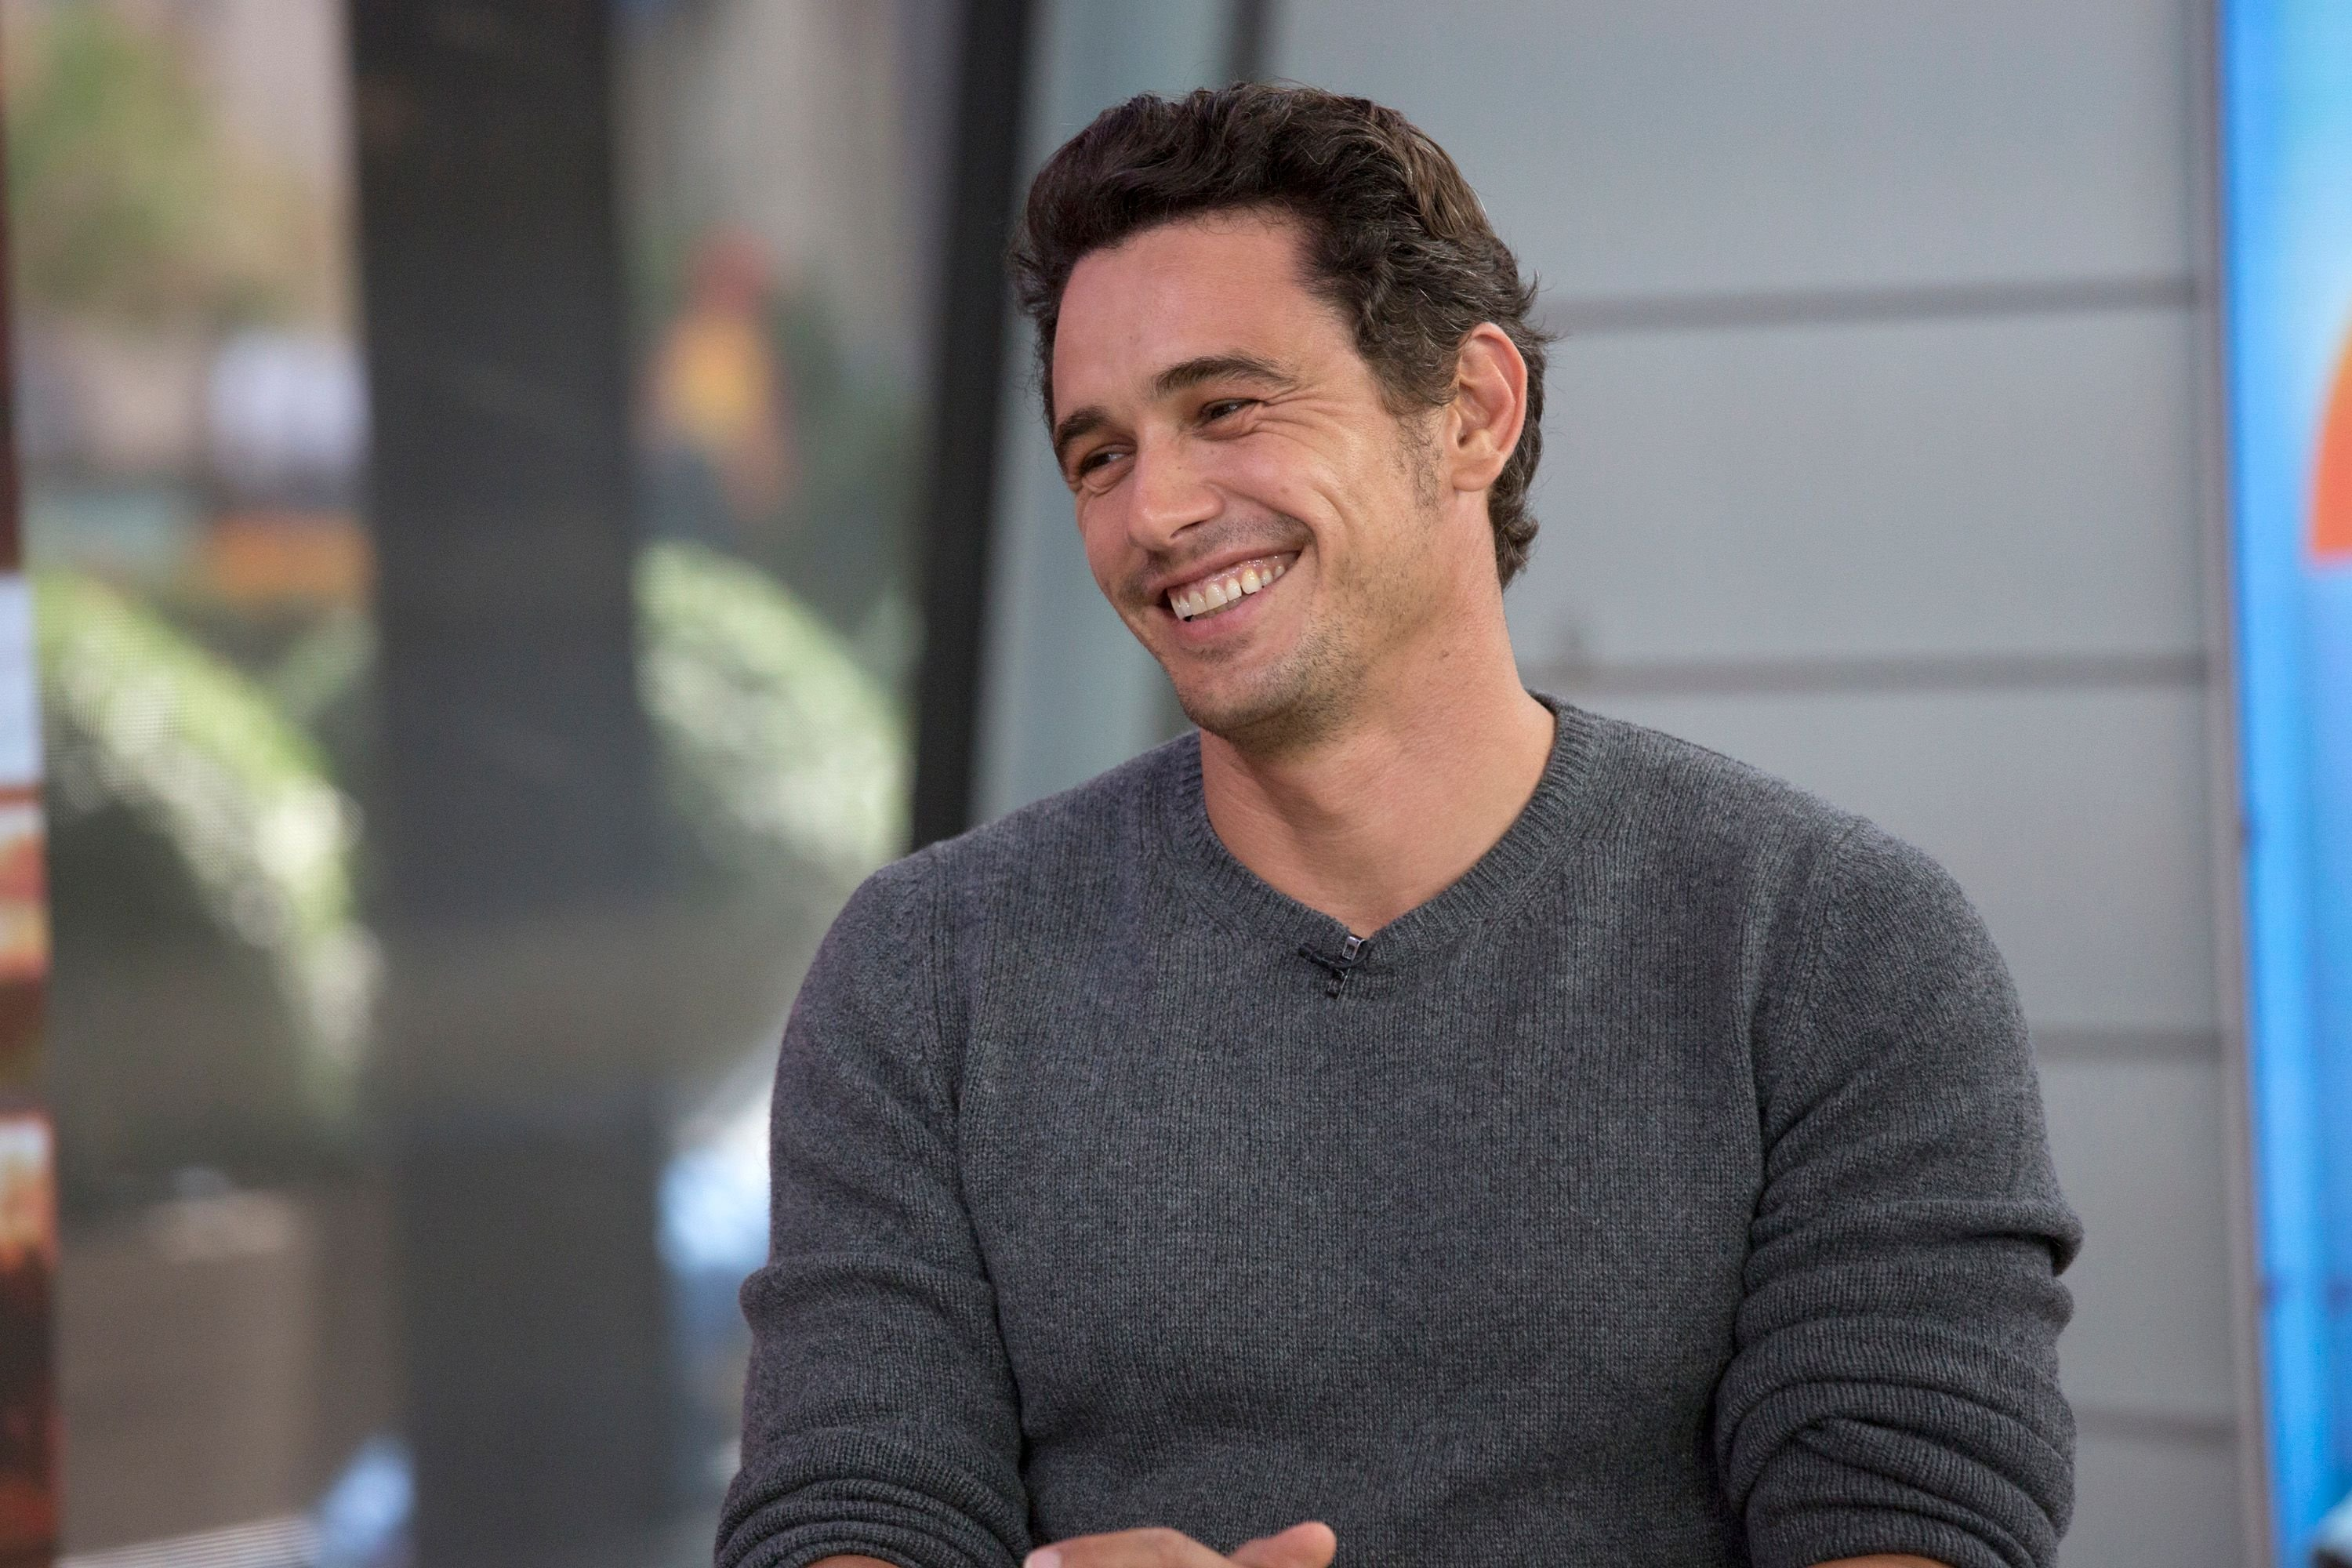 Actor James Franco at NBC Universal in September 2017 | Source: Getty Images